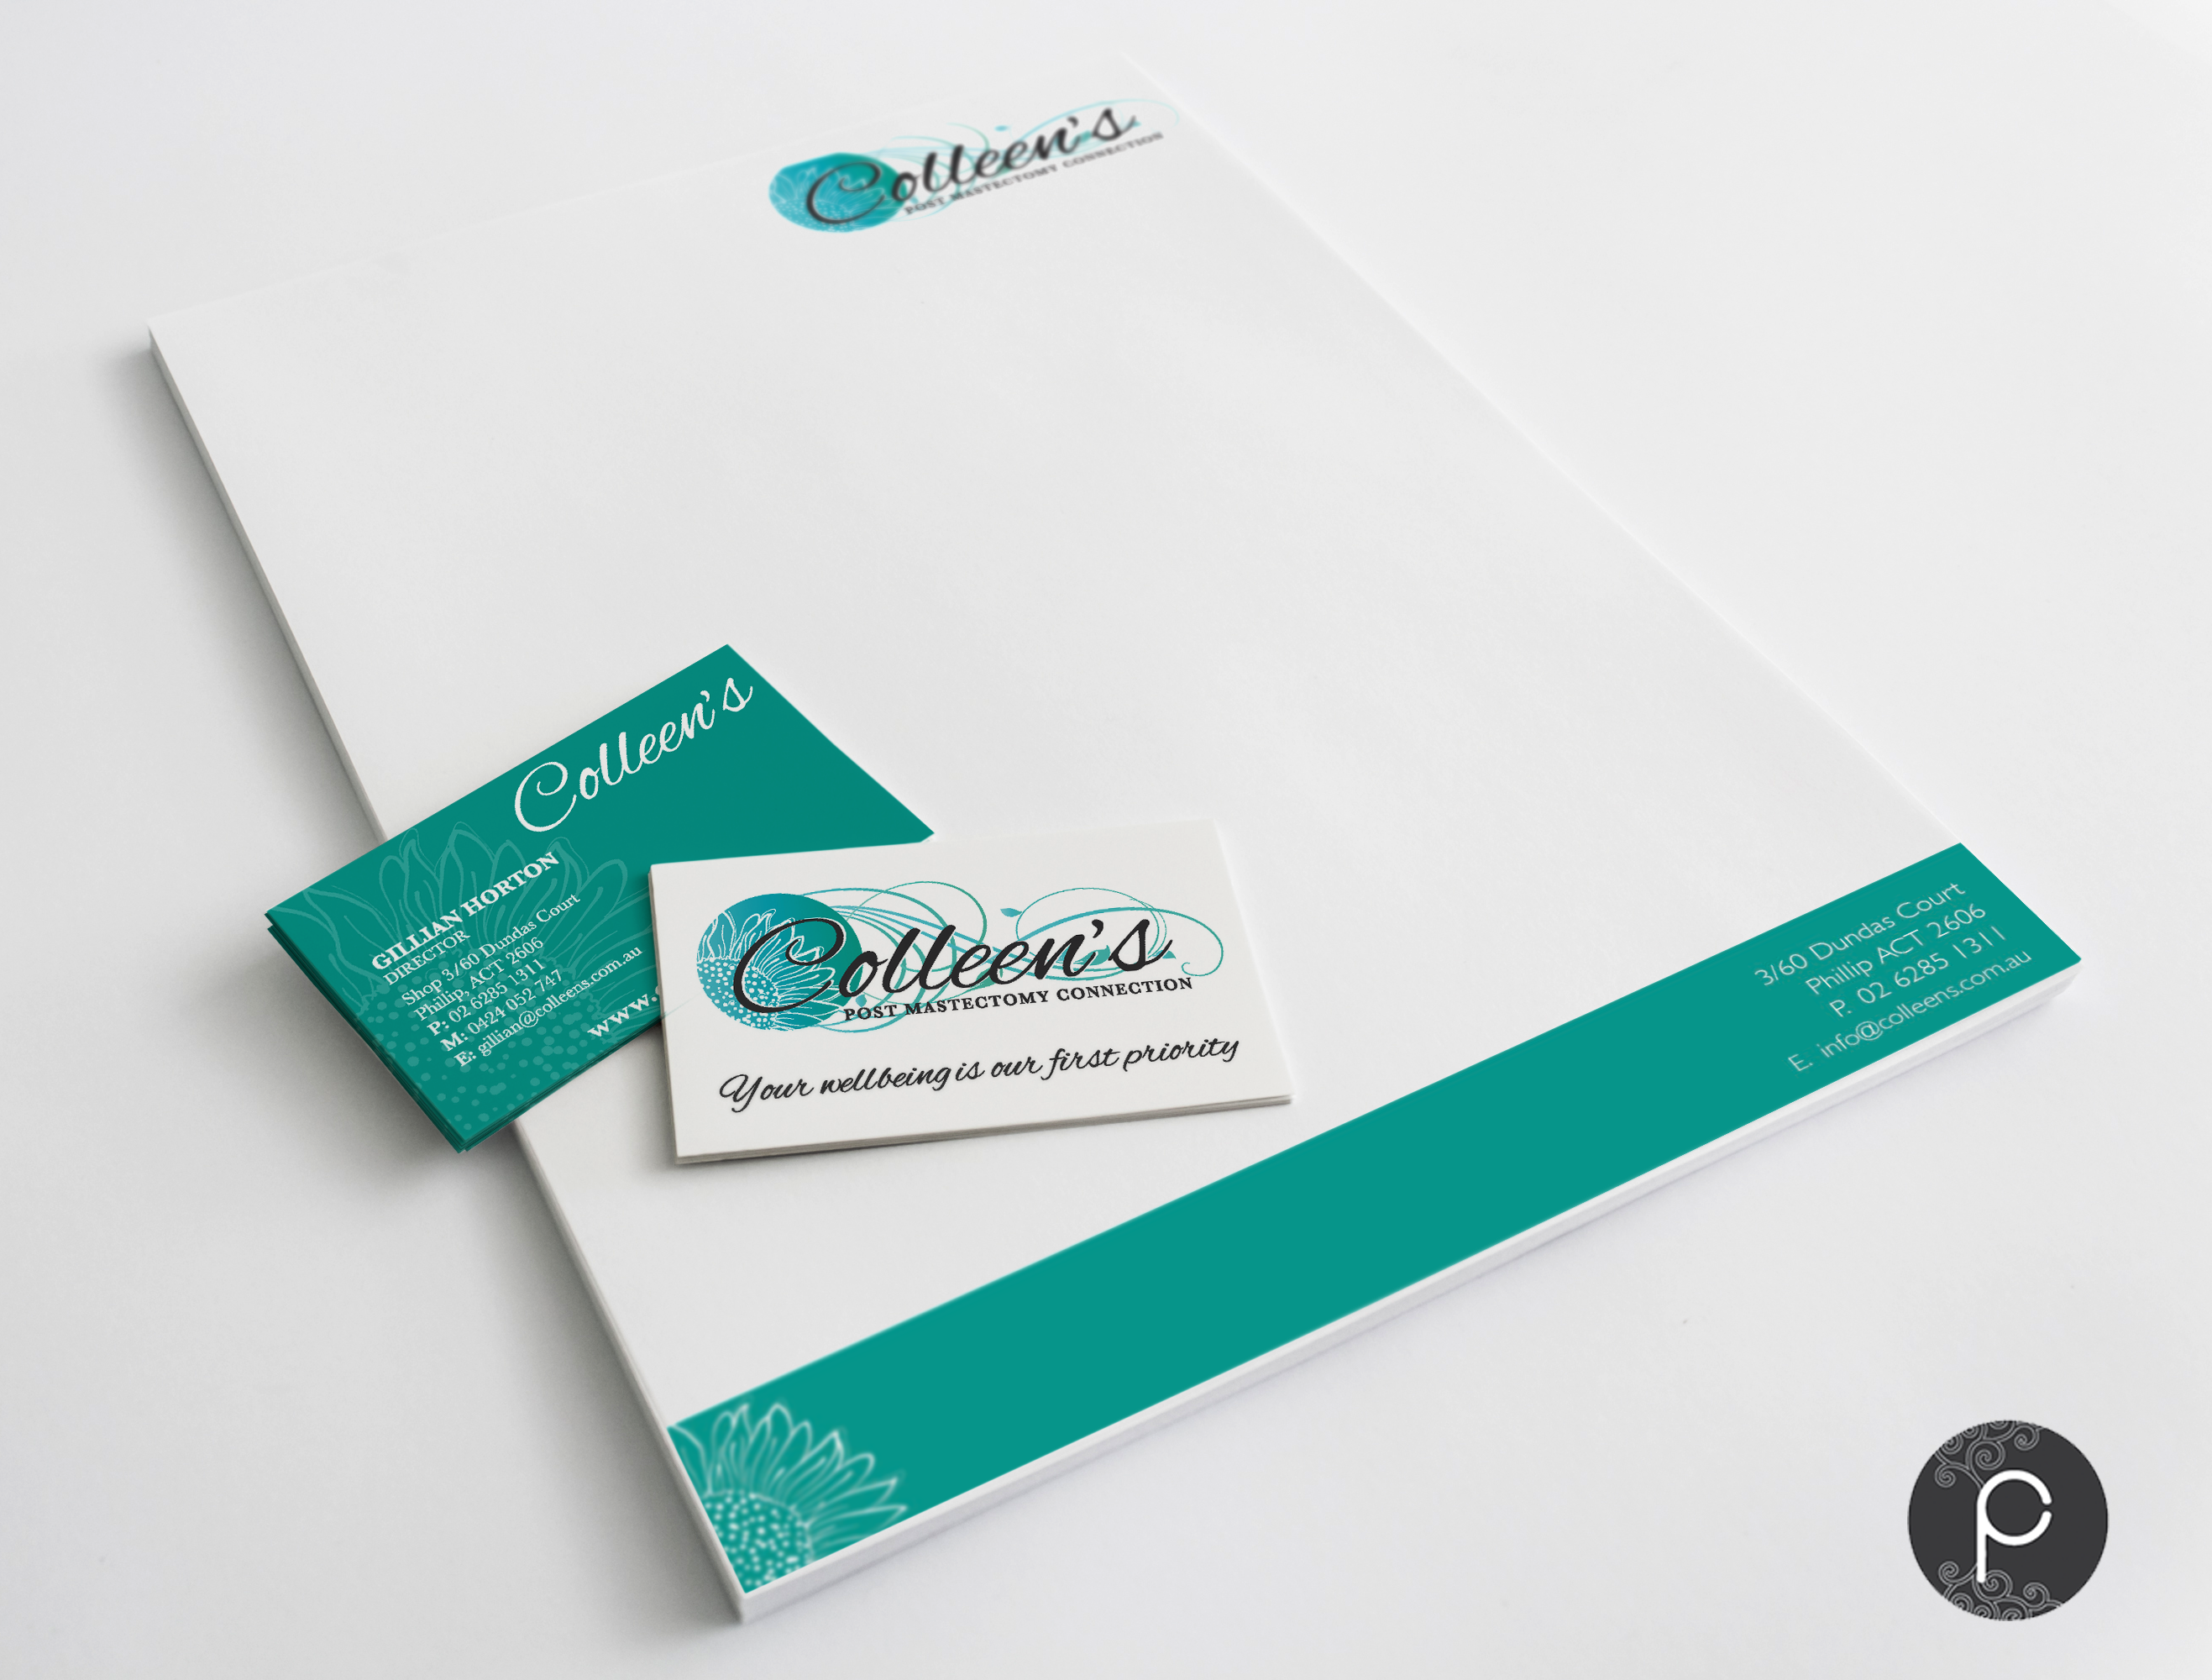 Branding & stationary design By Phinici Design